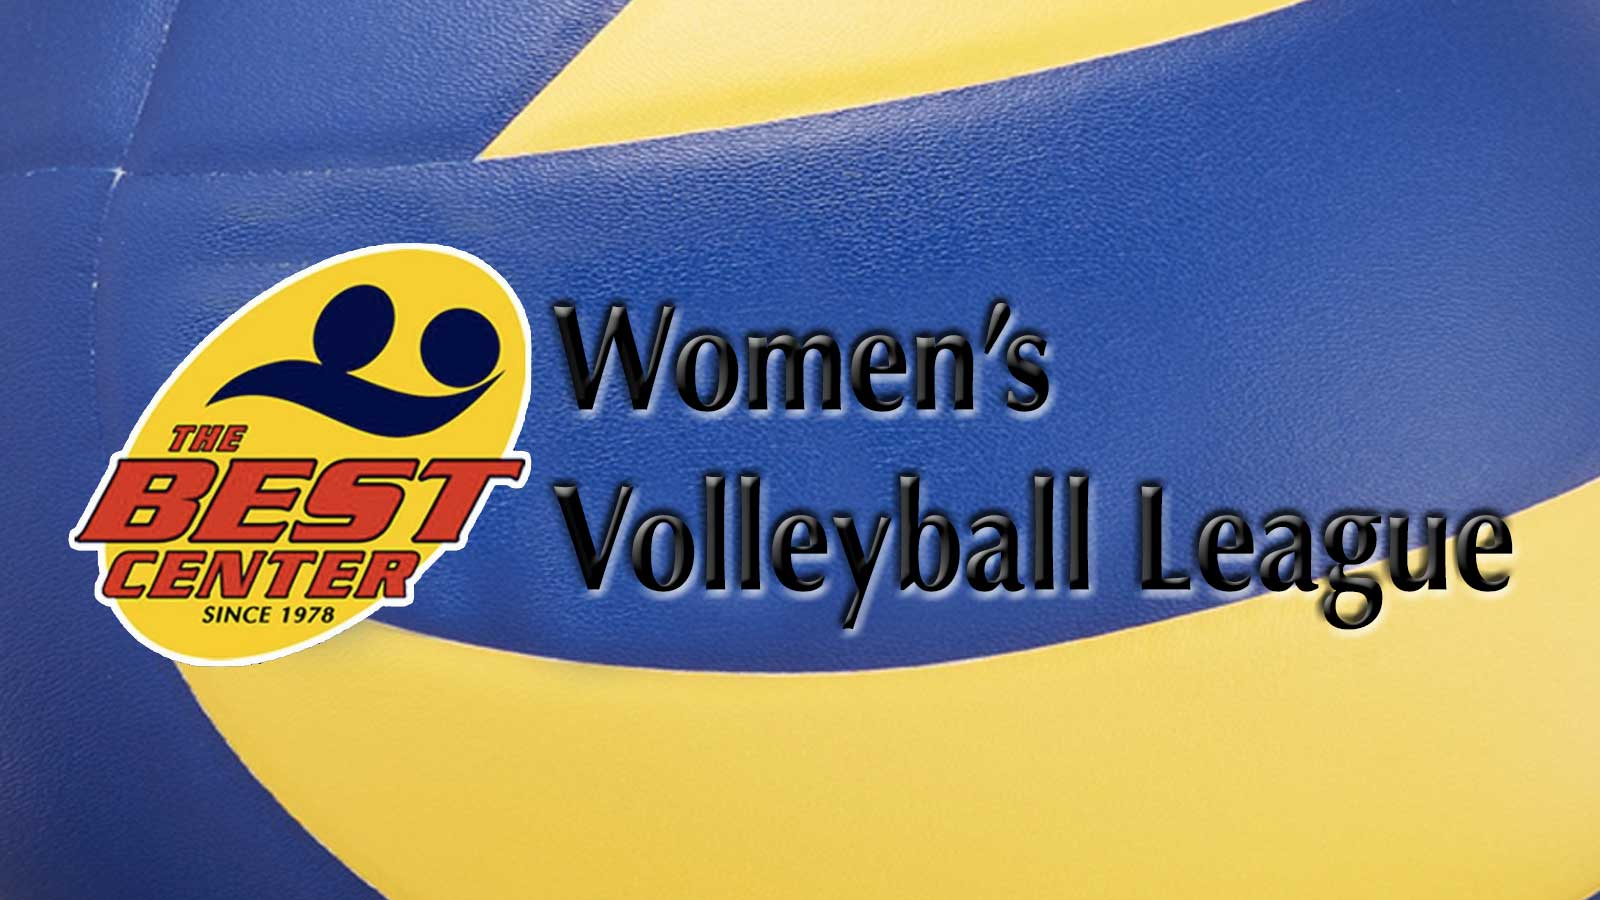 BEST Center 20th Women's Volleyball League Spikes Off